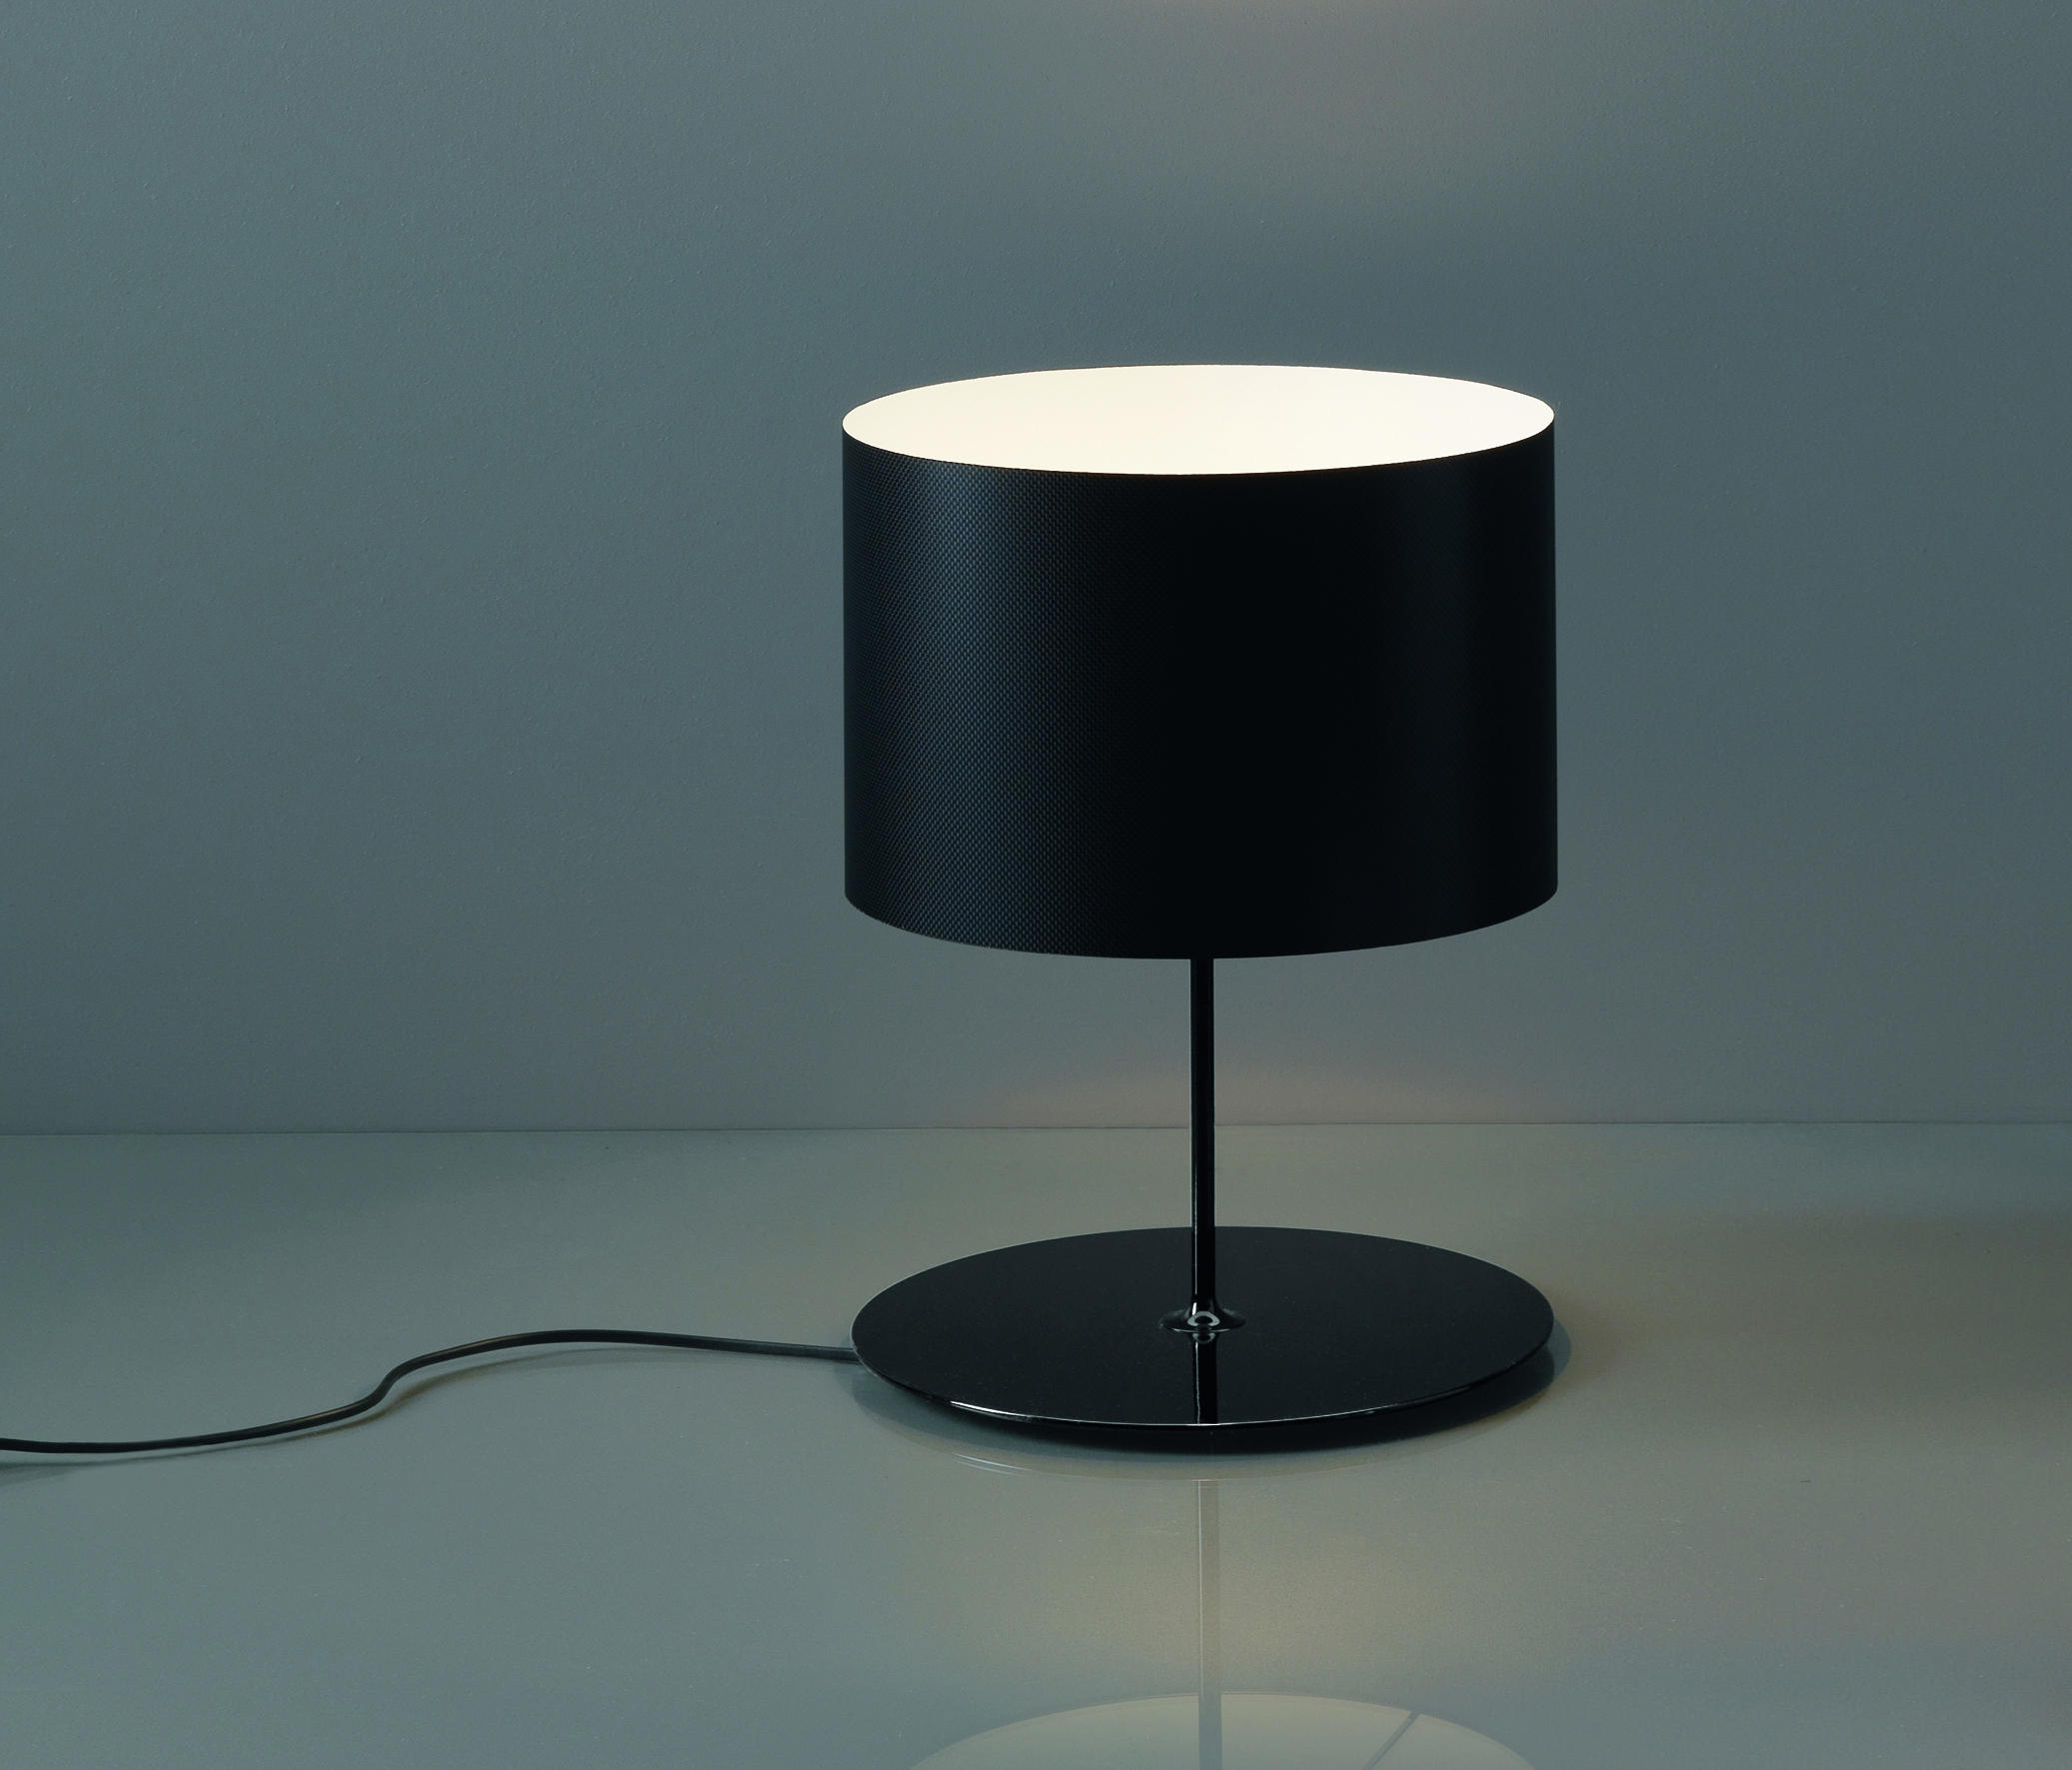 Lovely ... HALF MOON Table Lamp Mini By Karboxx | General Lighting ...